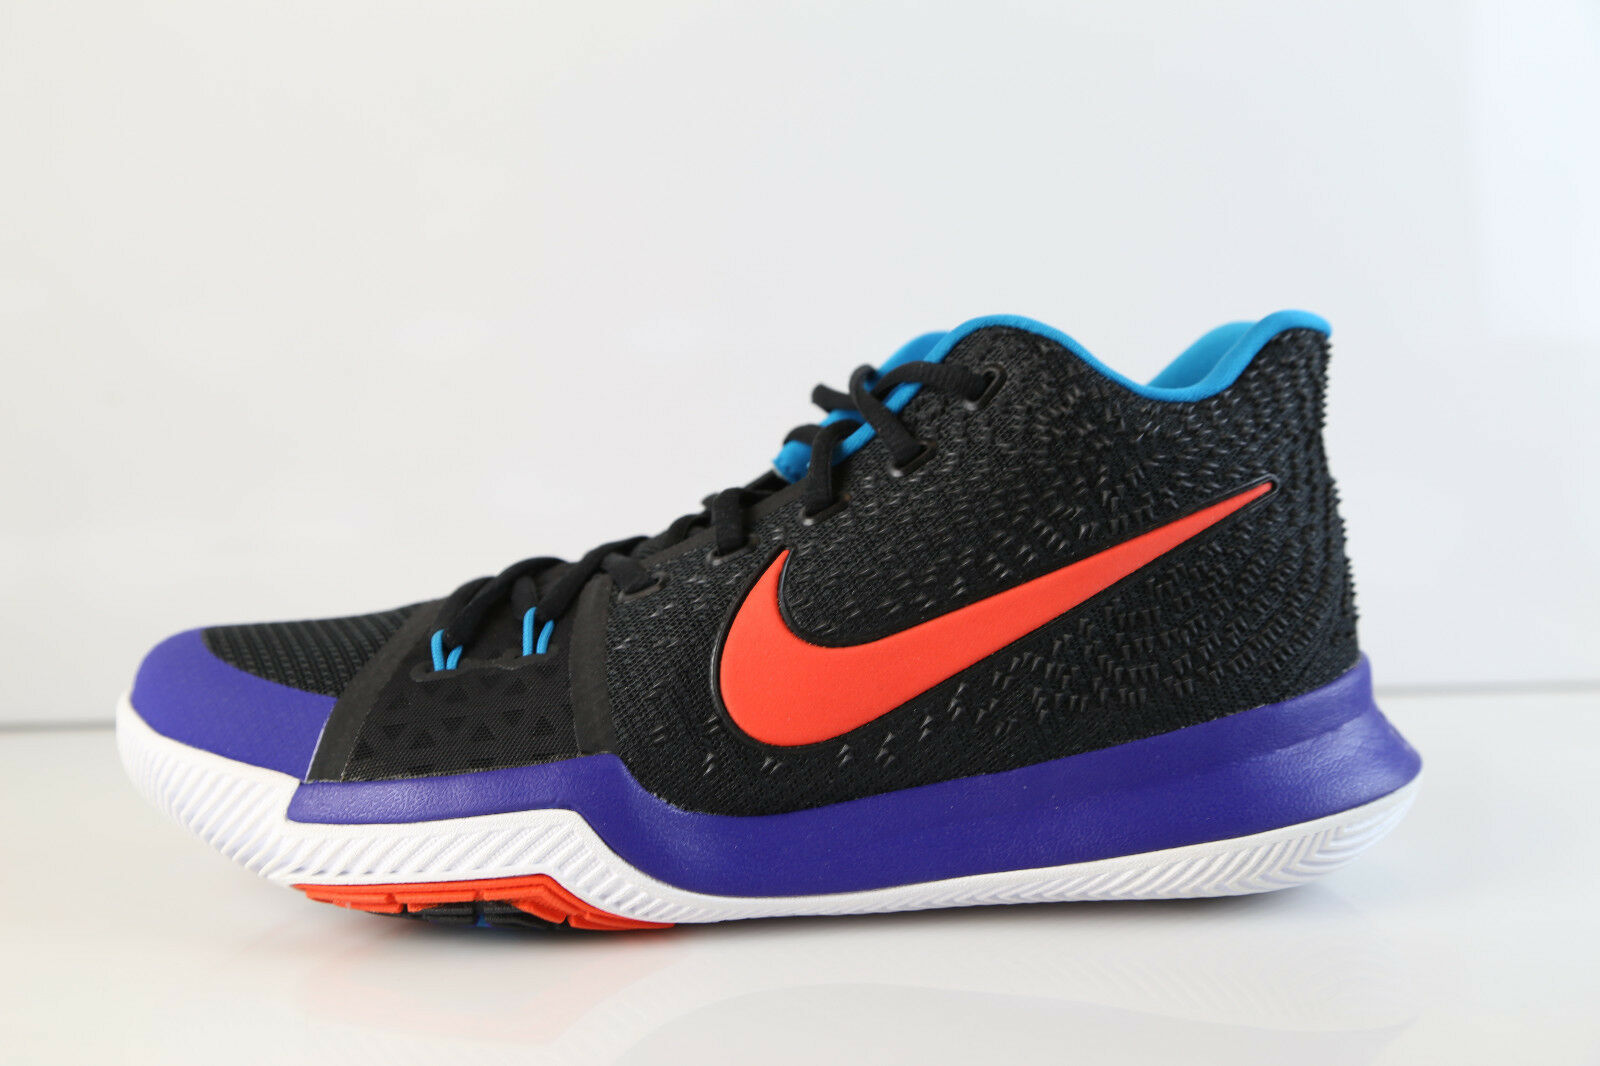 Nike kyrie 3 kyrache light schwarz team orange eintracht 852395-007 10 1 2